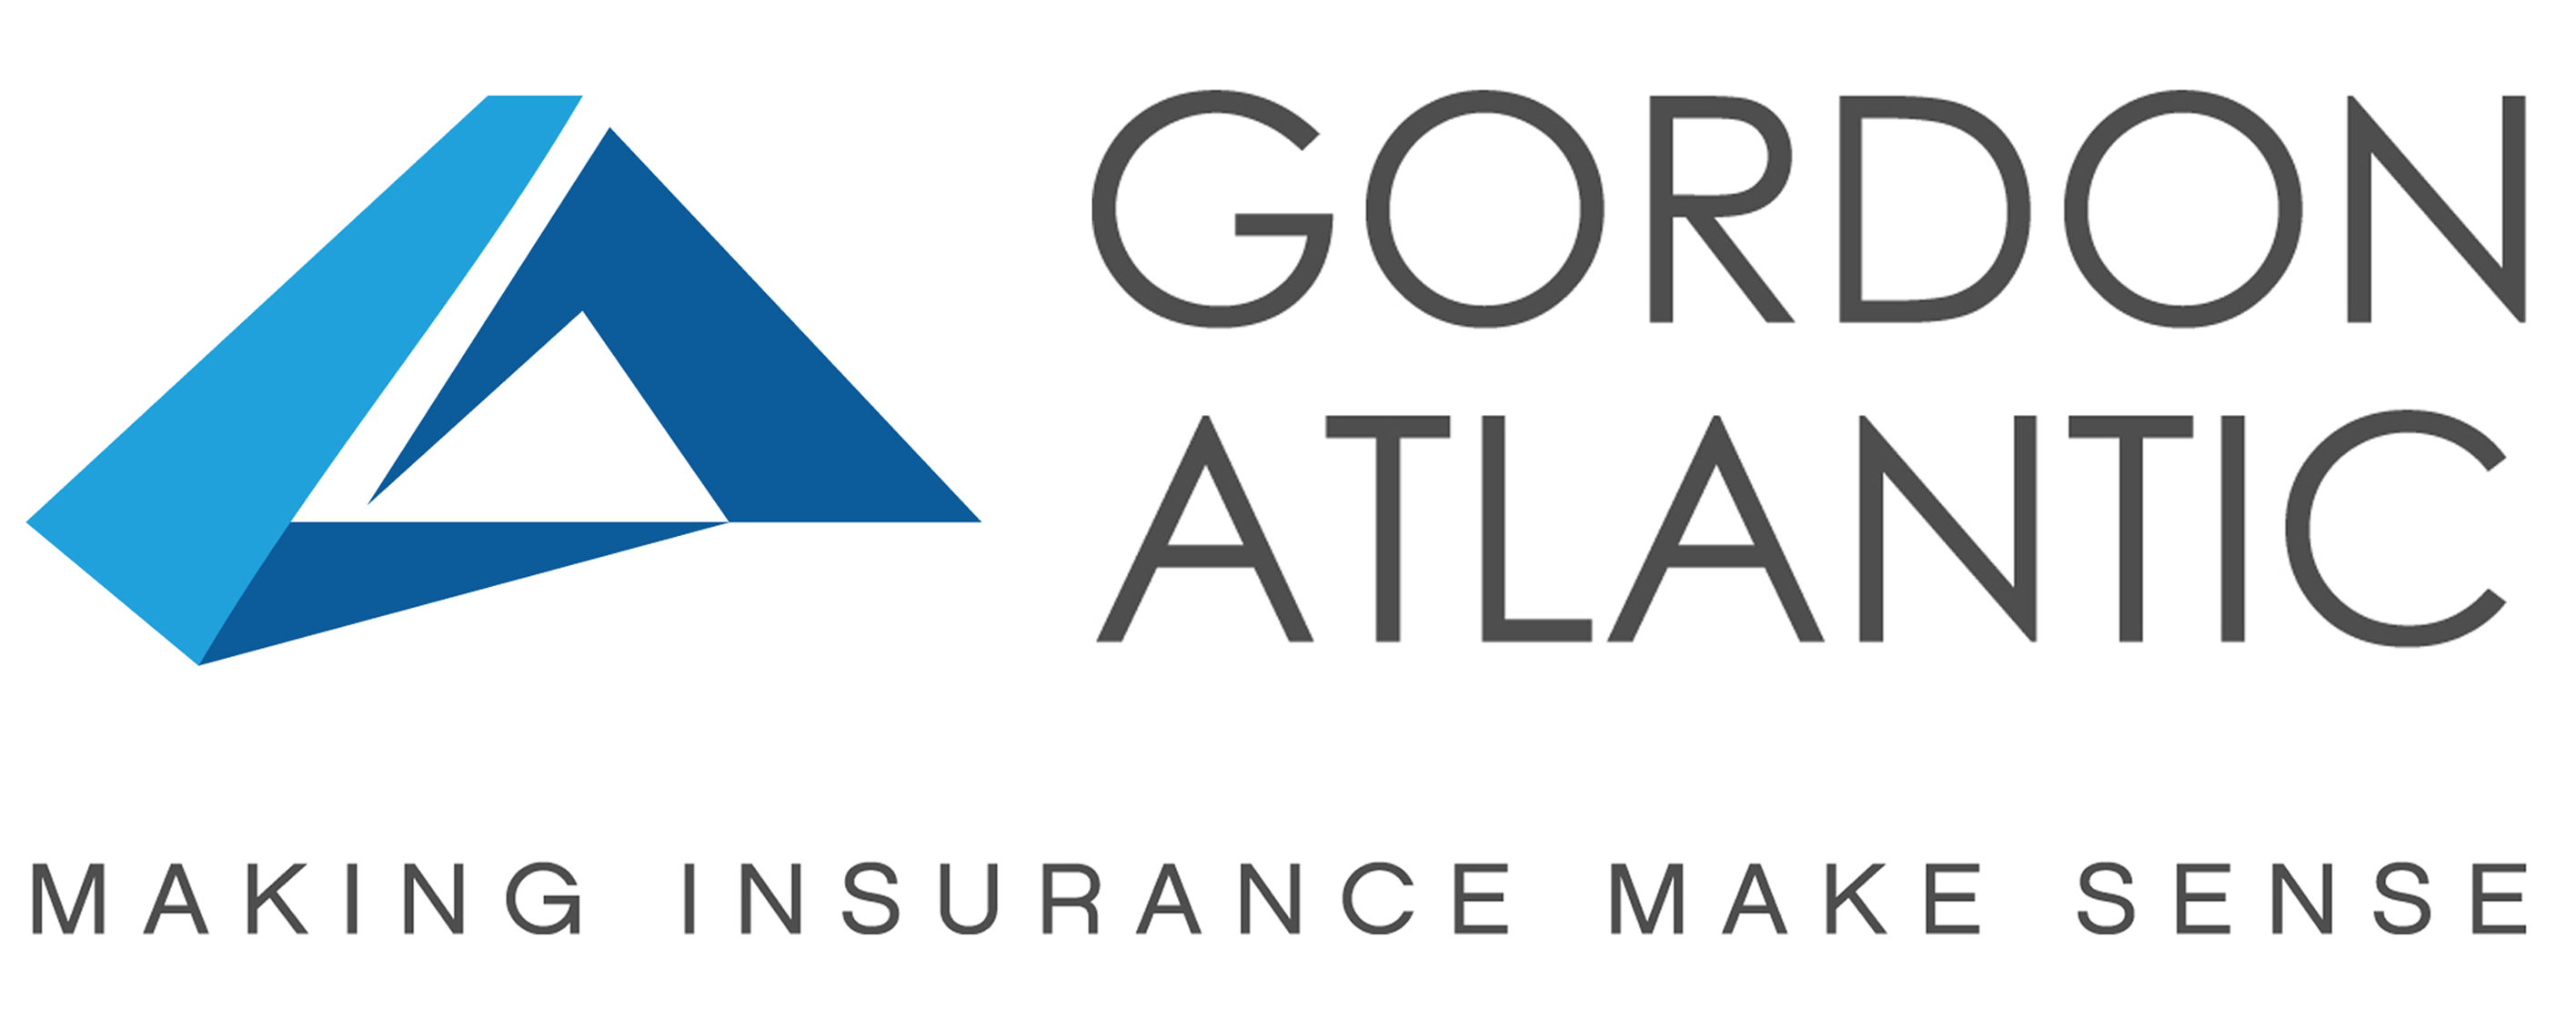 Gordon Atlantic Insurance Logo - We make Insurance Make Sense